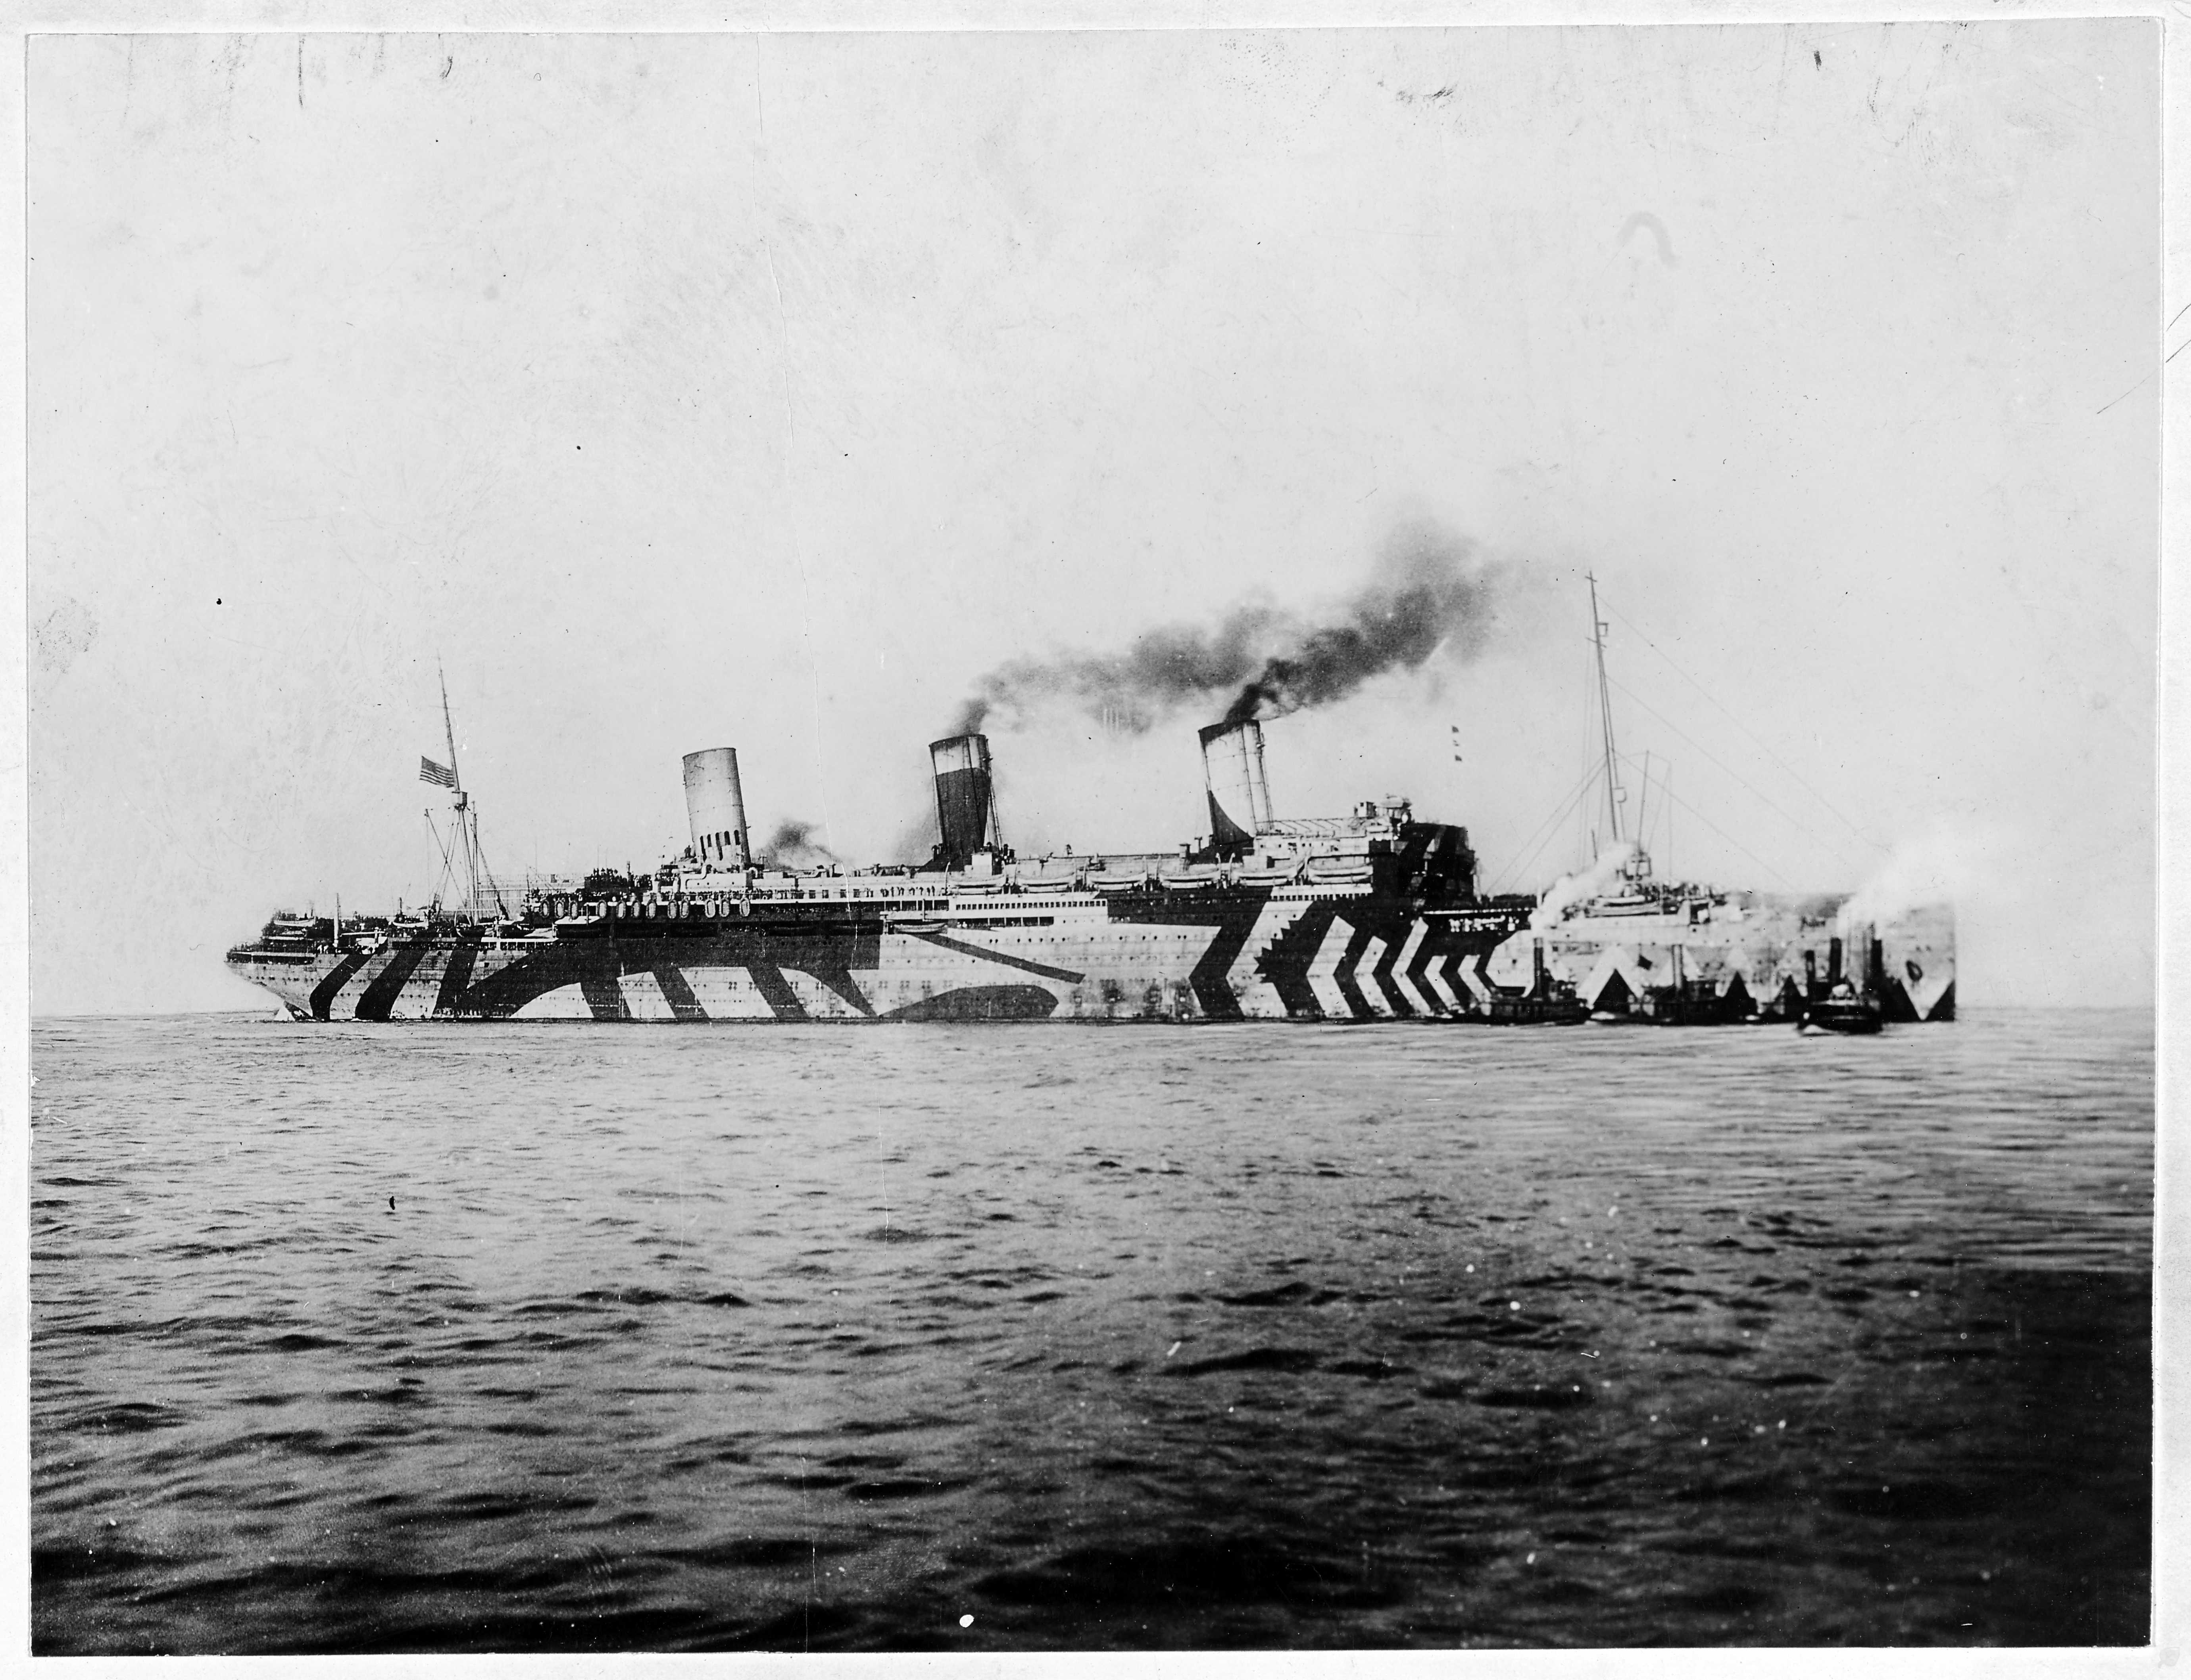 The USS Leviathan